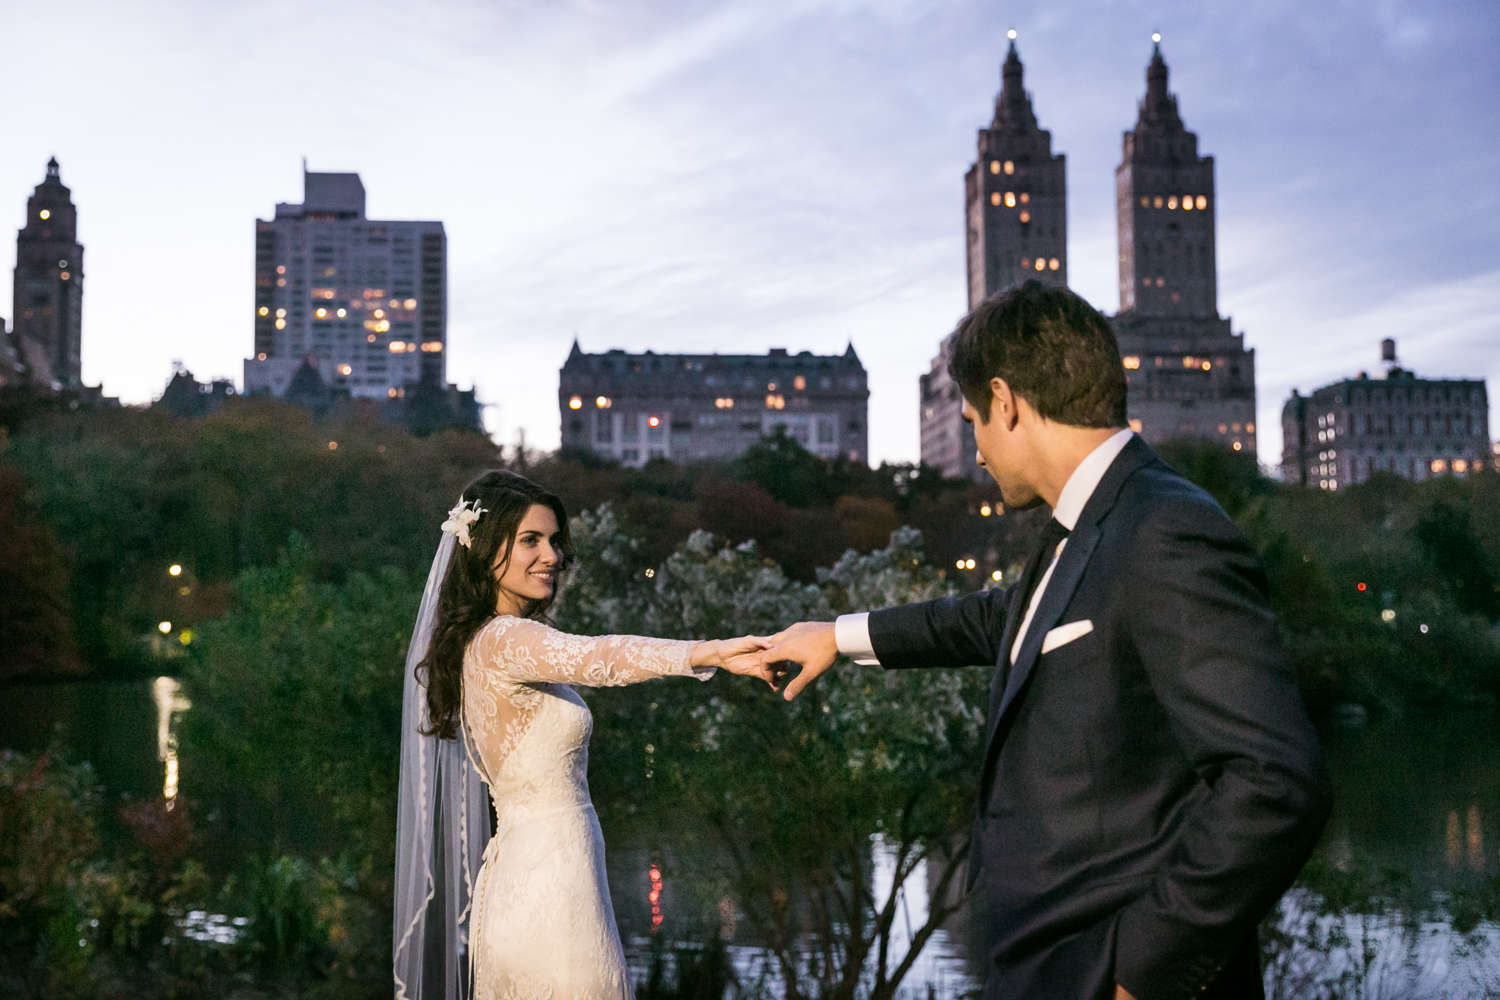 Bride and groom dancing in Central Park at night at a Loeb Boathouse wedding